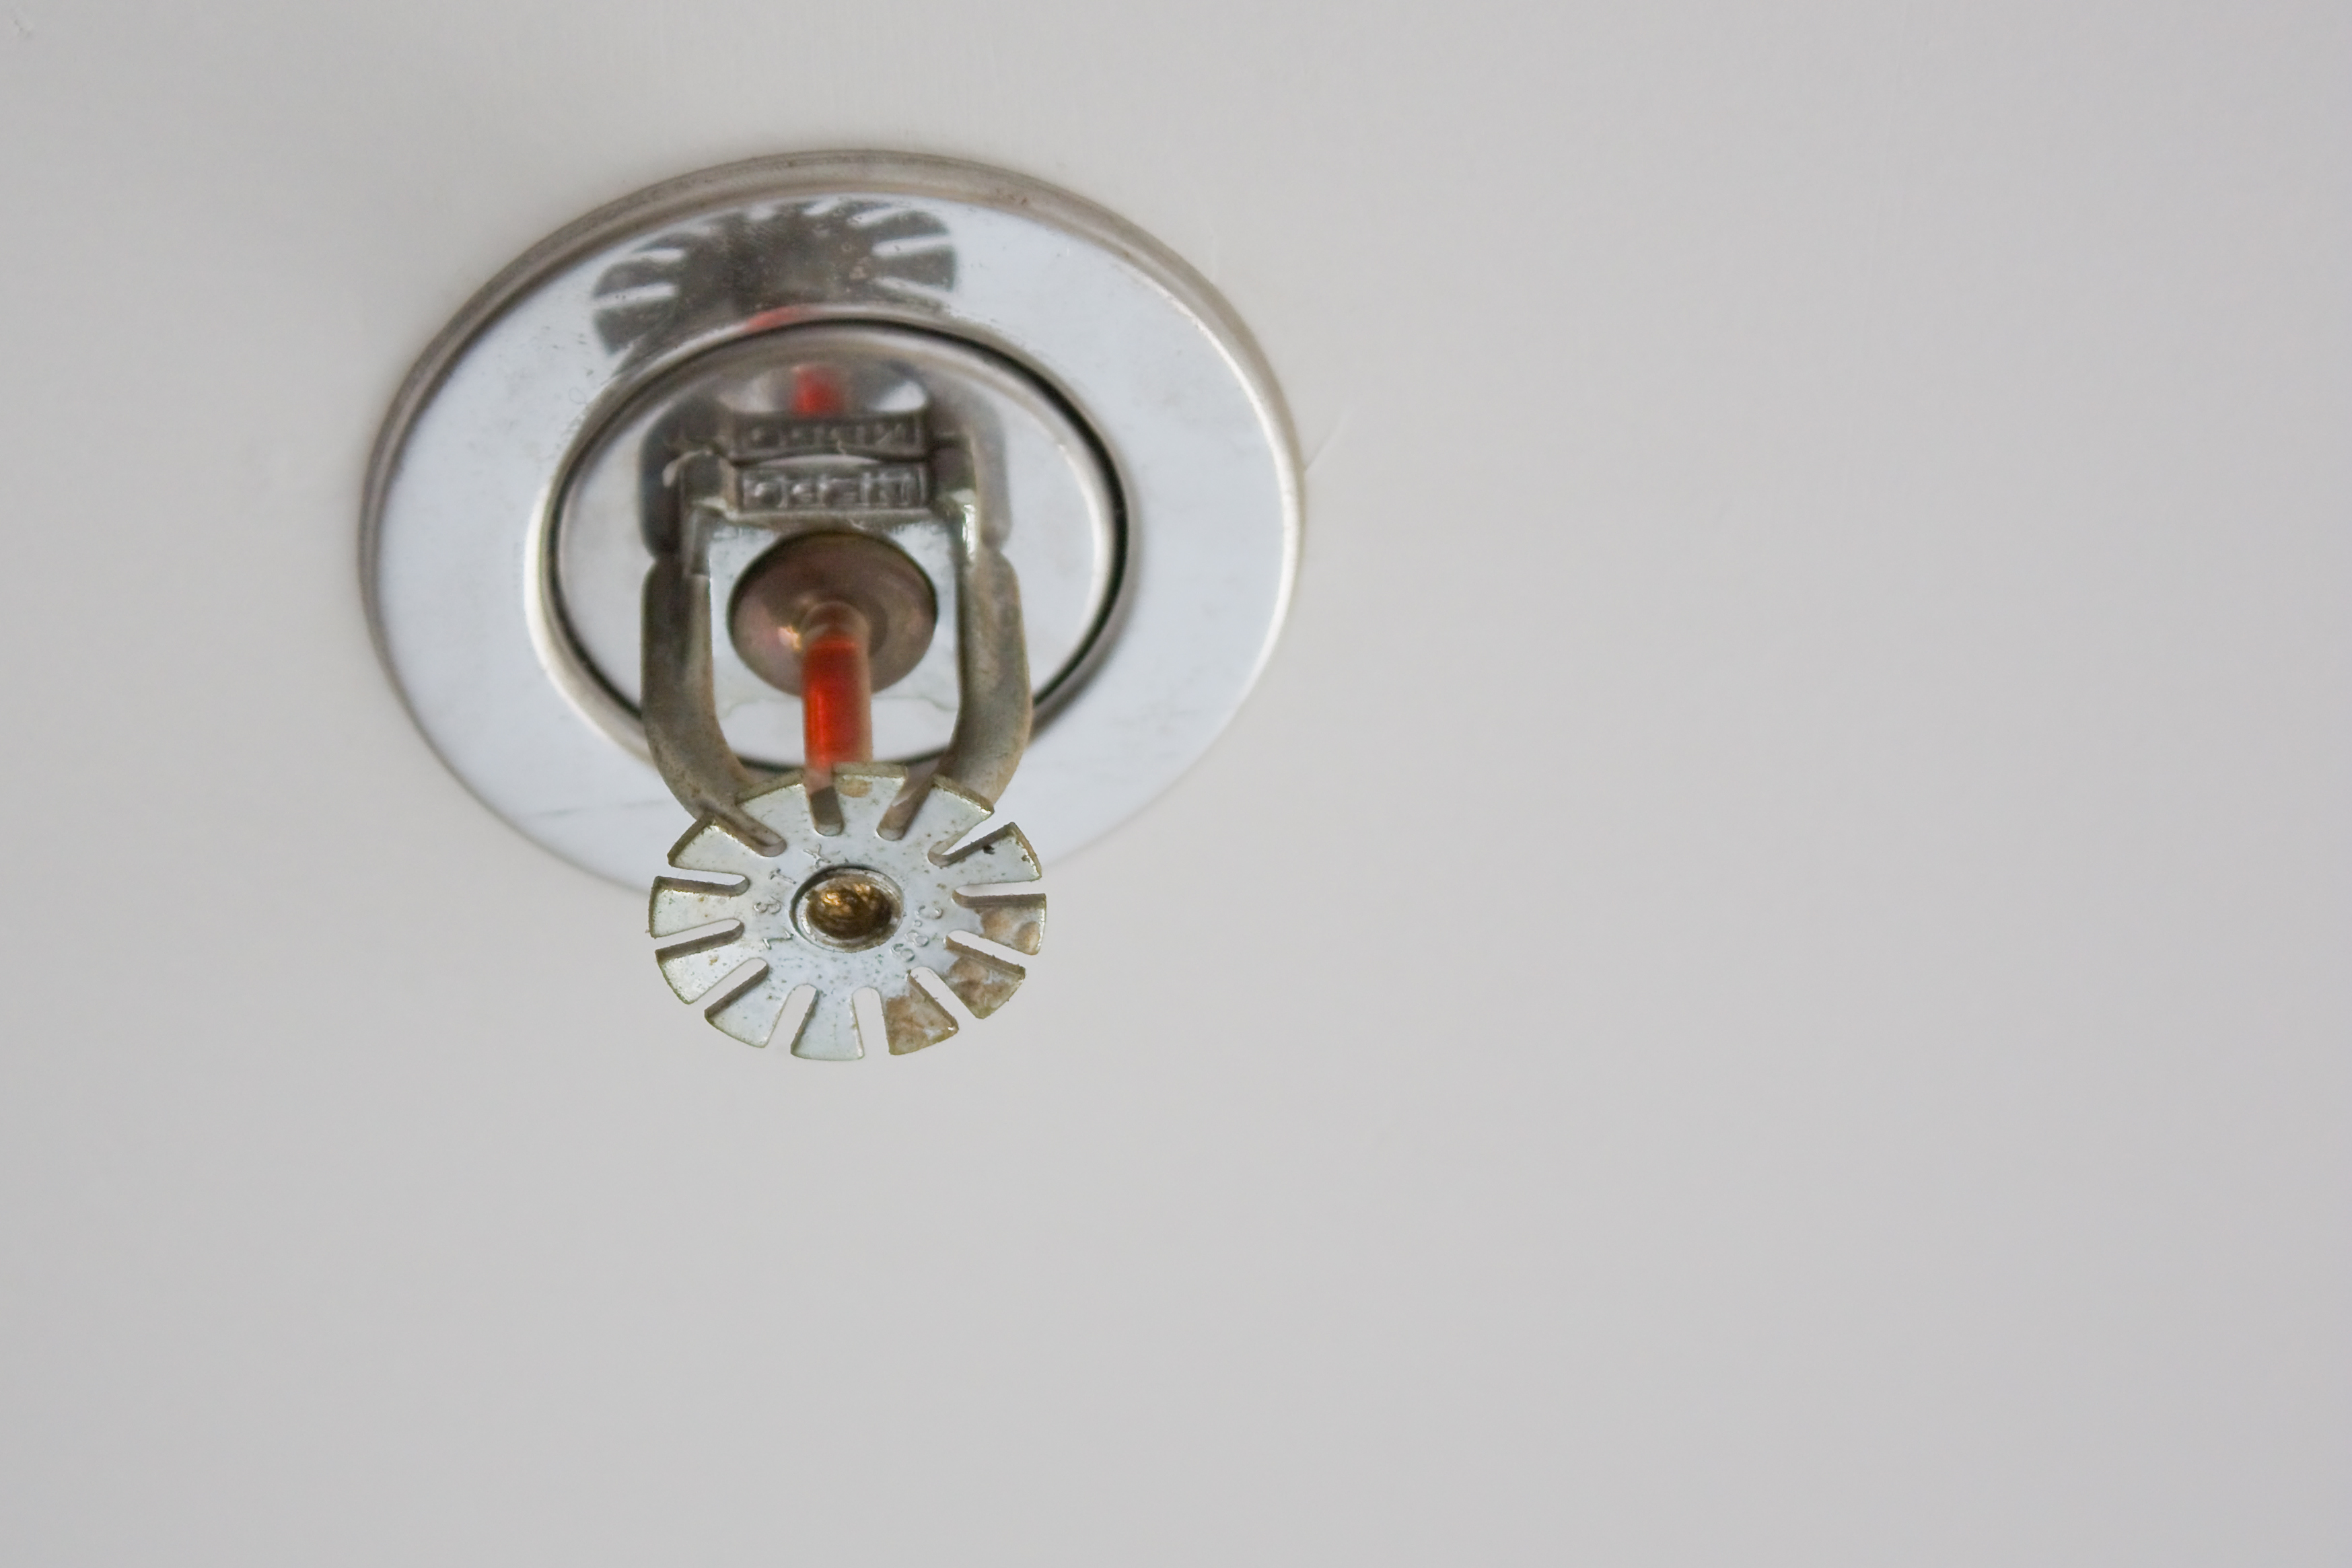 4 Types of Fire Sprinkler Systems - Fireline